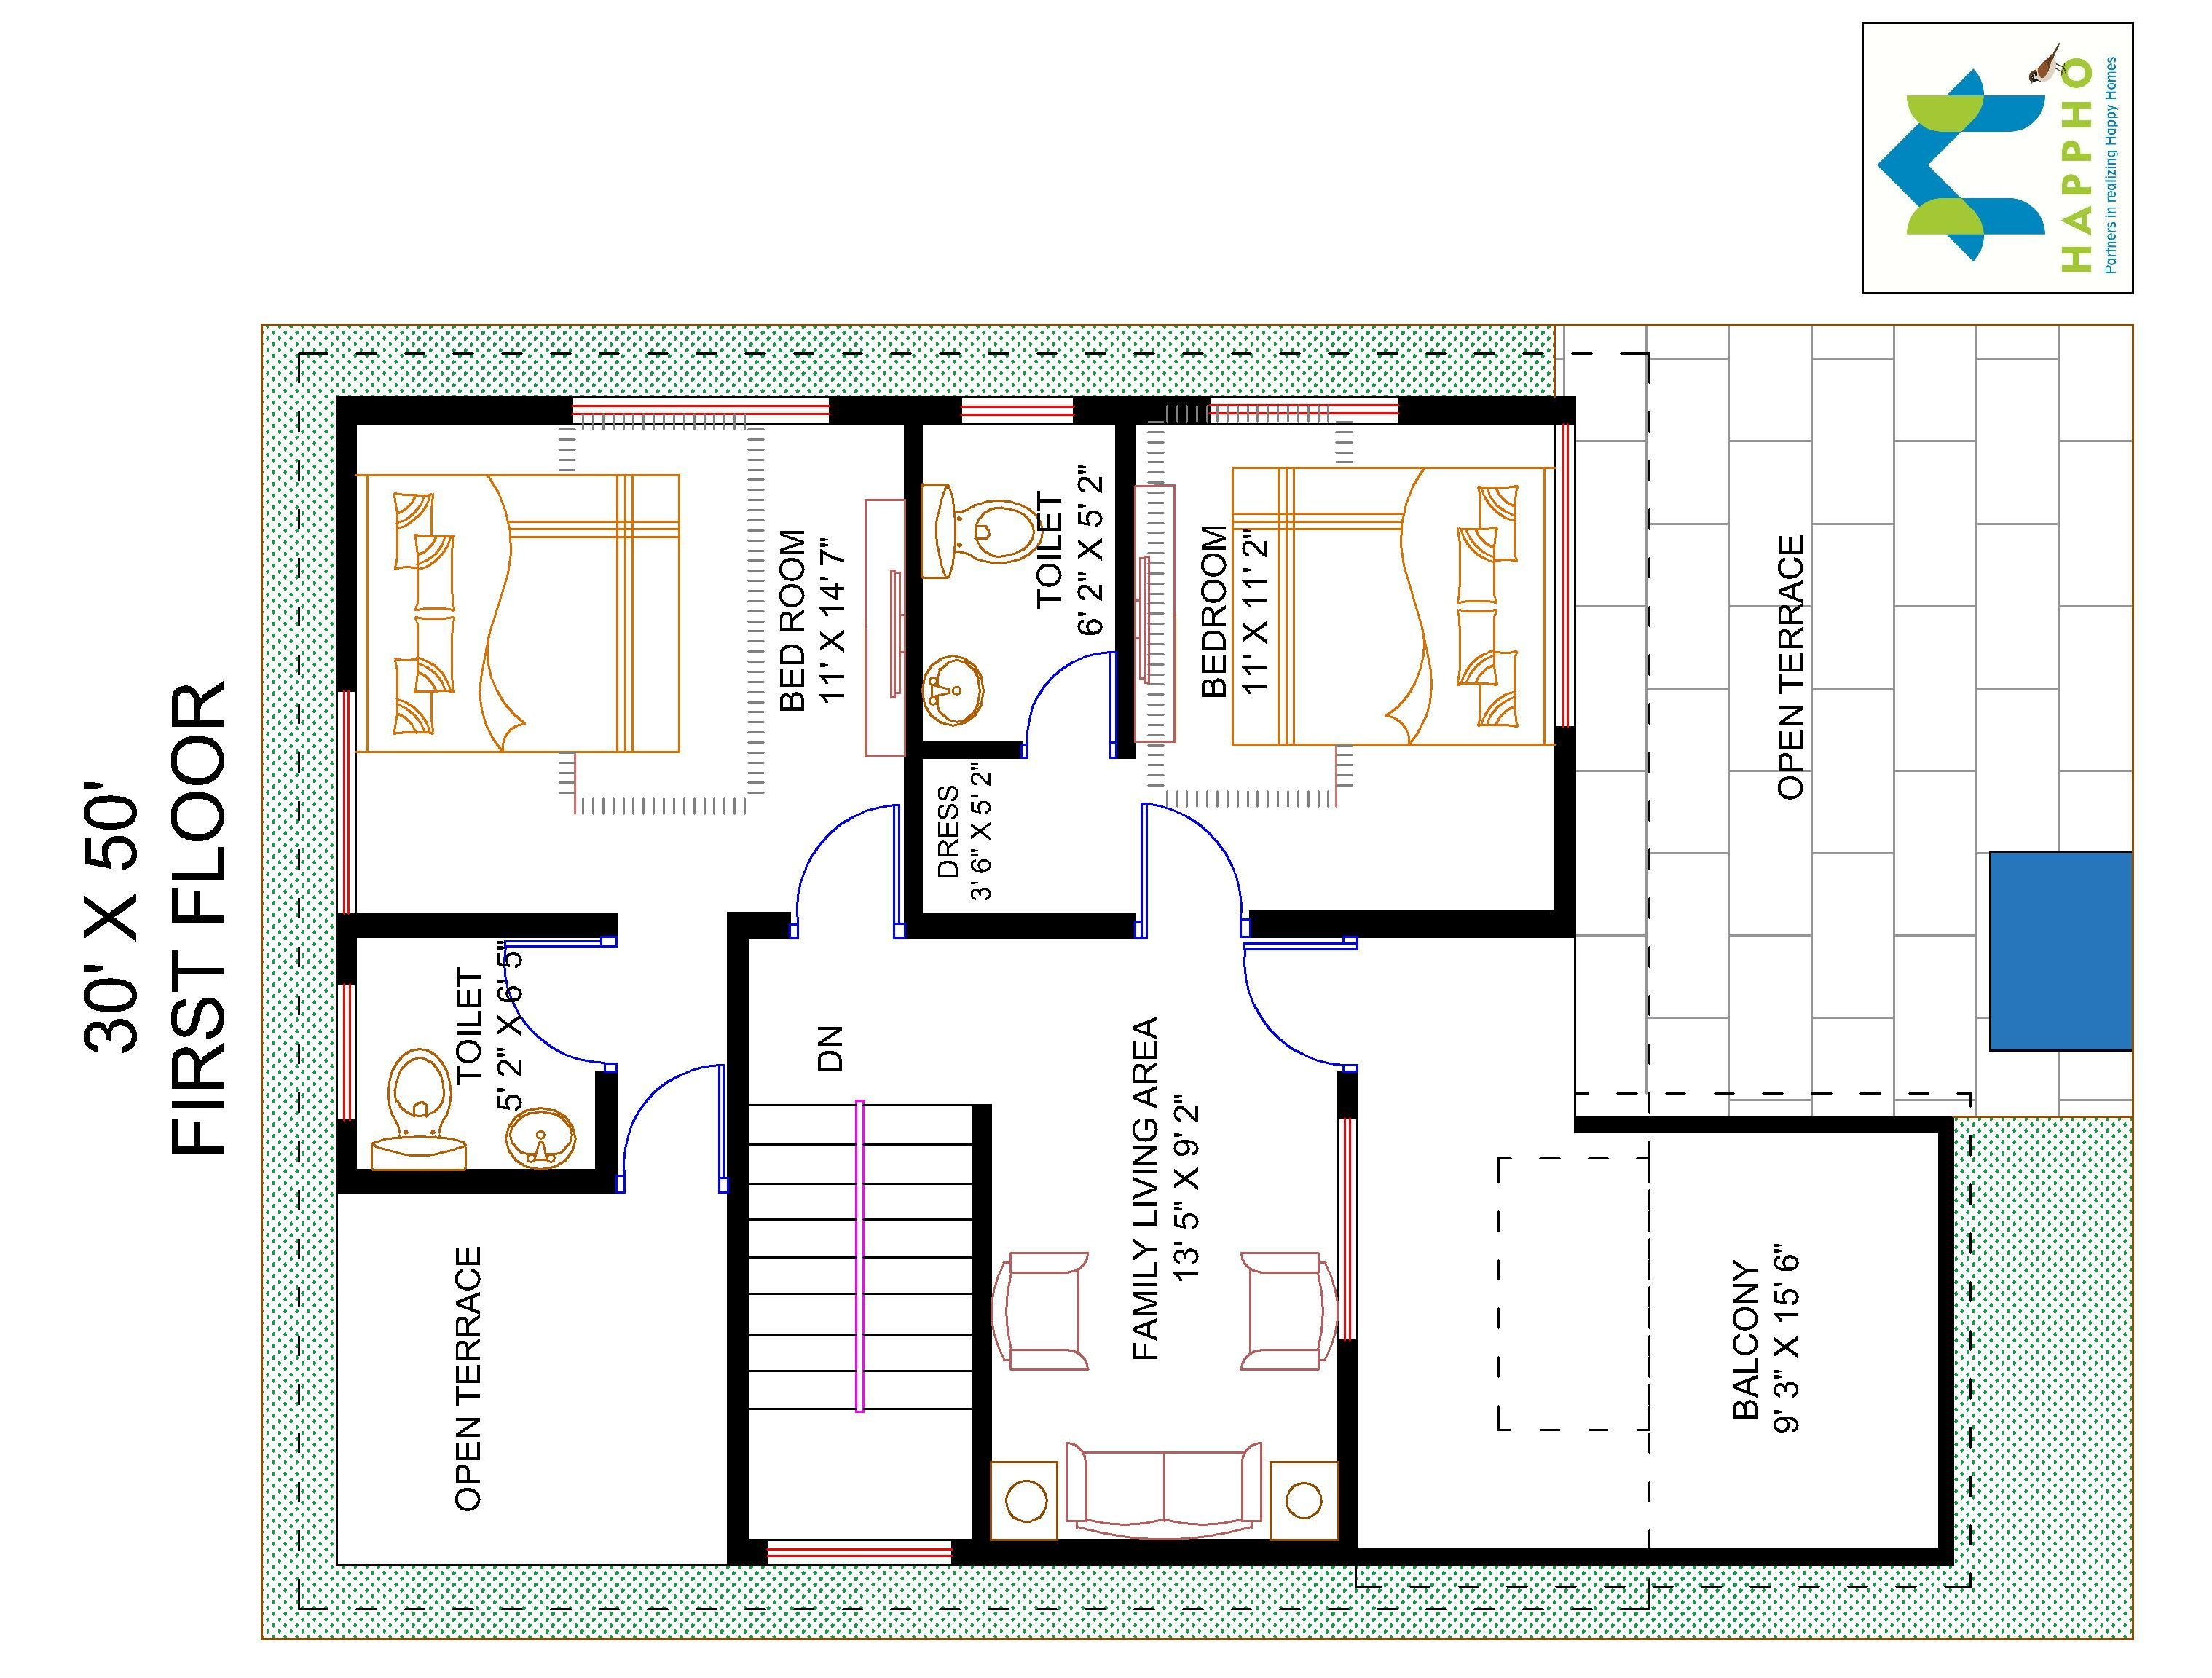 4 bhk floor plan for 30 x 50 plot 1500 square feet 166 for 1500 sq ft duplex house plans